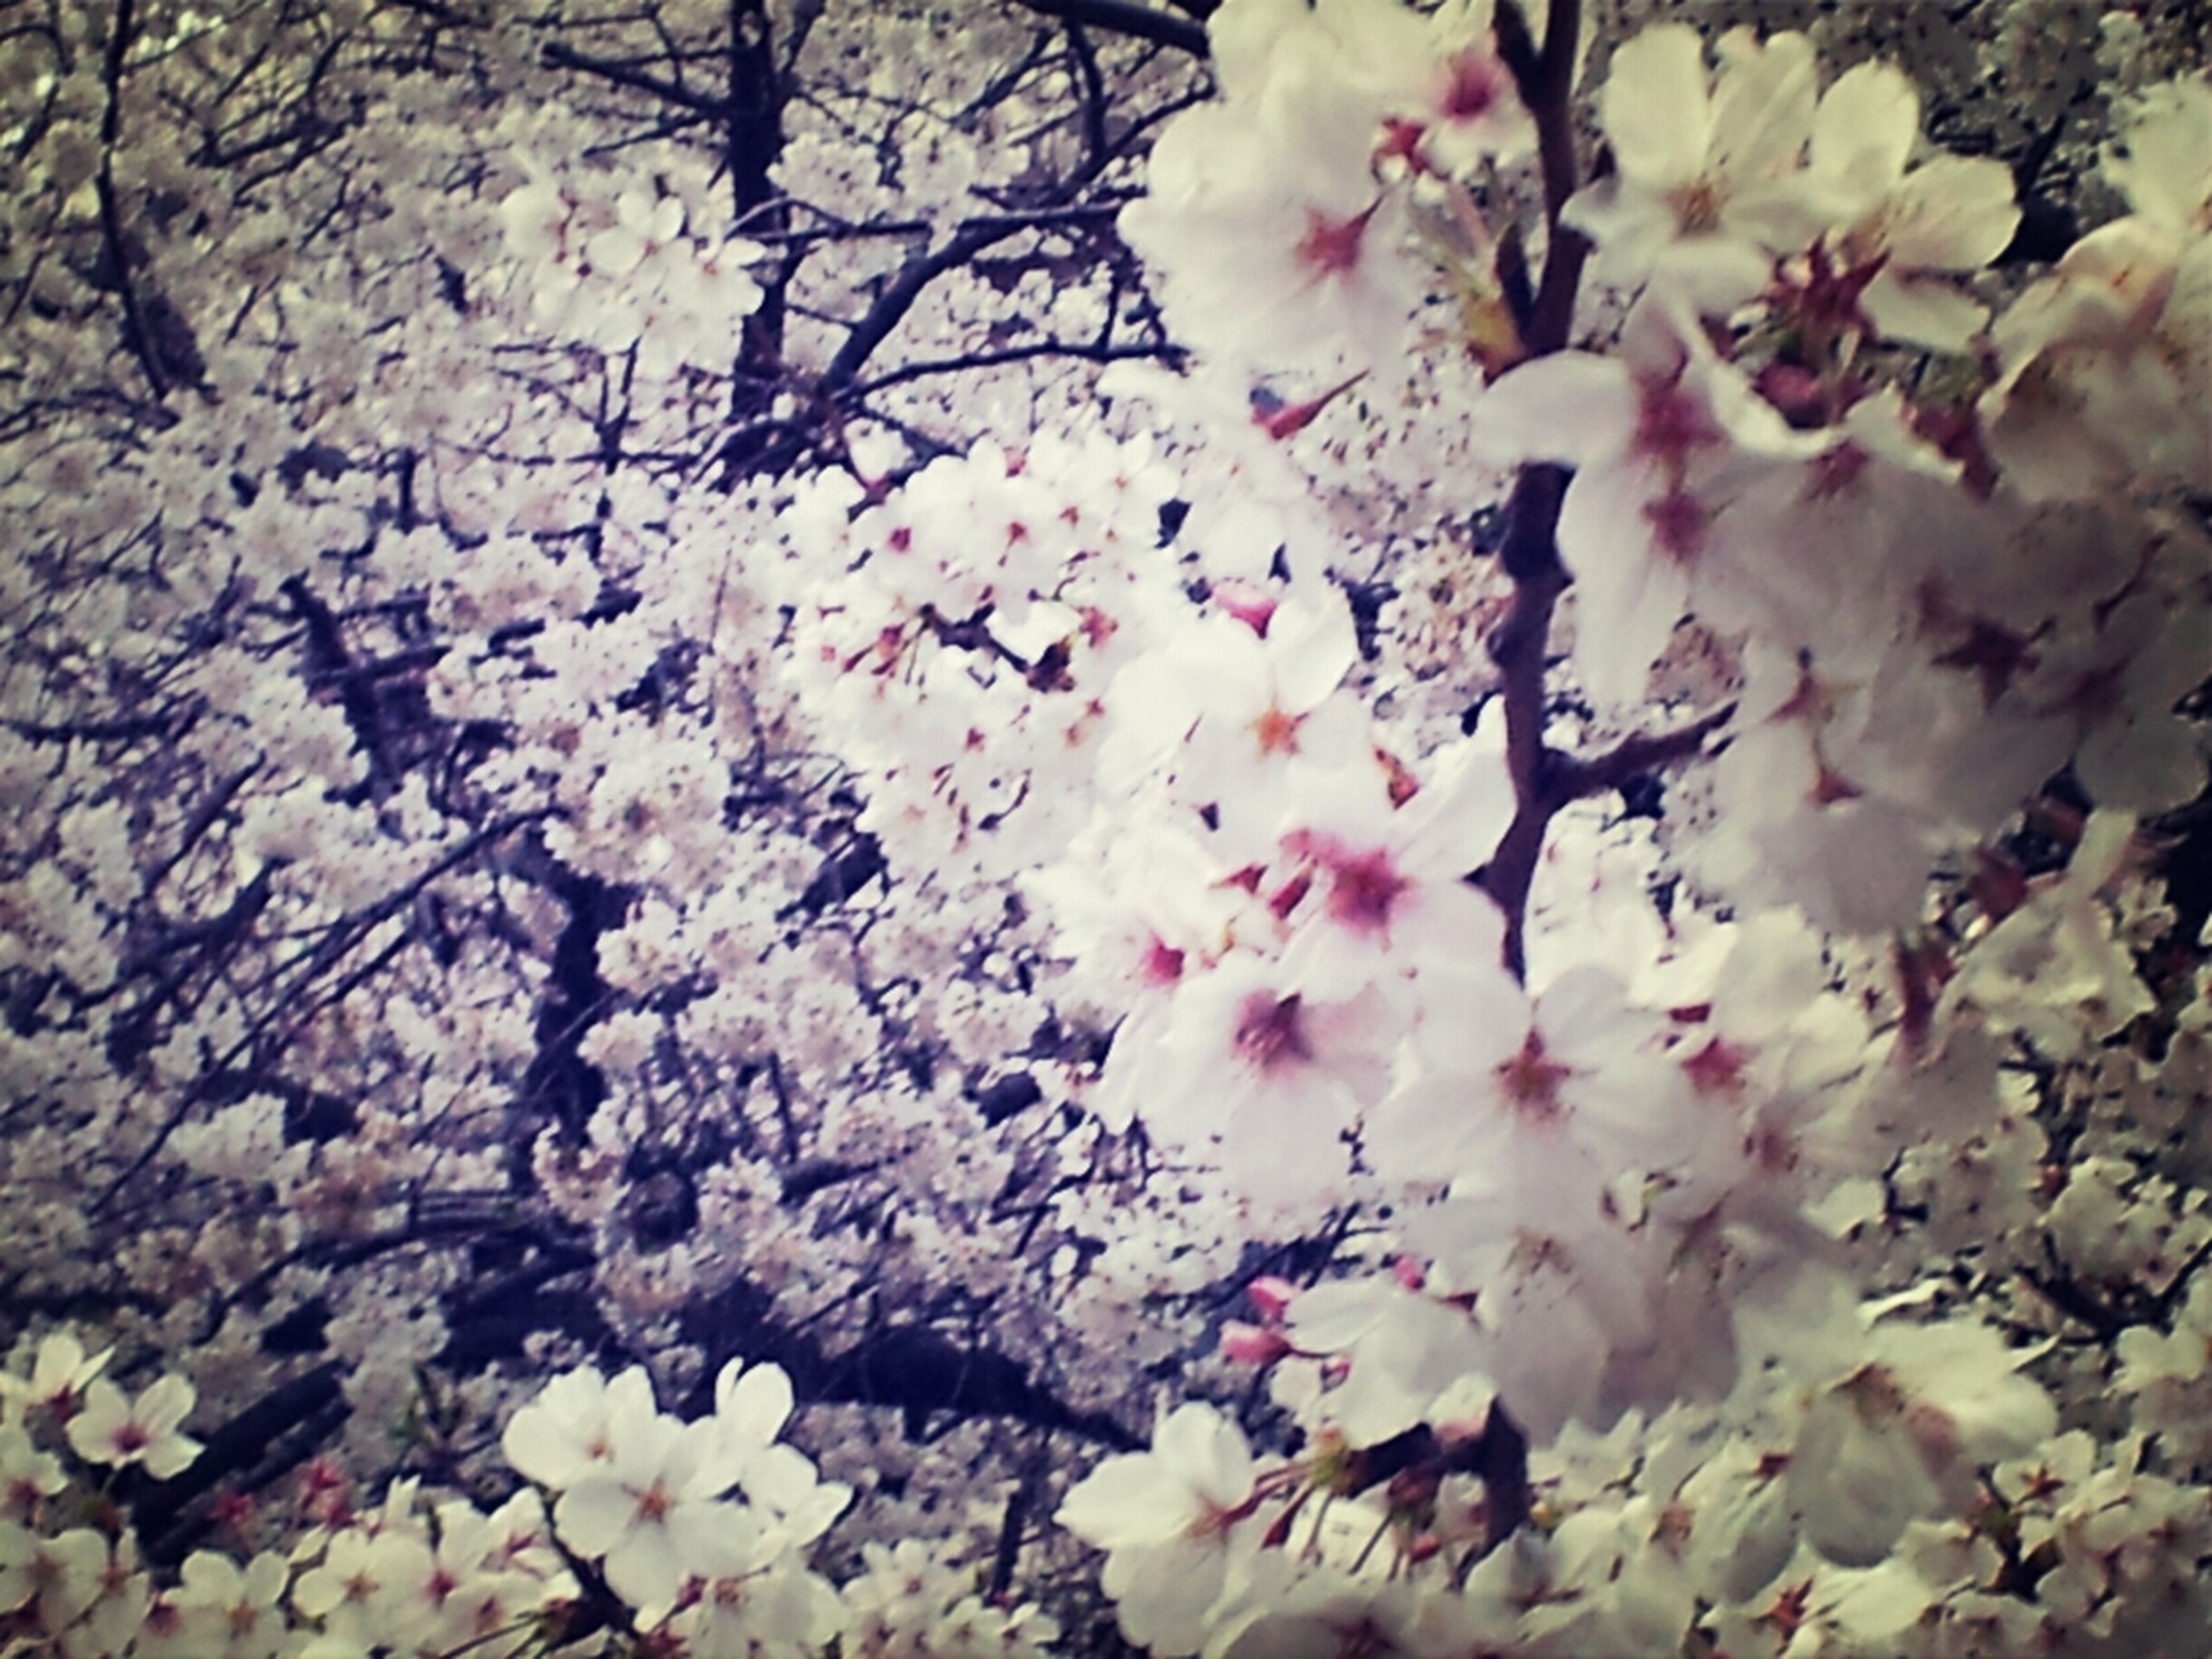 flower, freshness, fragility, branch, growth, tree, cherry blossom, beauty in nature, pink color, blossom, cherry tree, nature, petal, low angle view, in bloom, springtime, blooming, backgrounds, pink, close-up